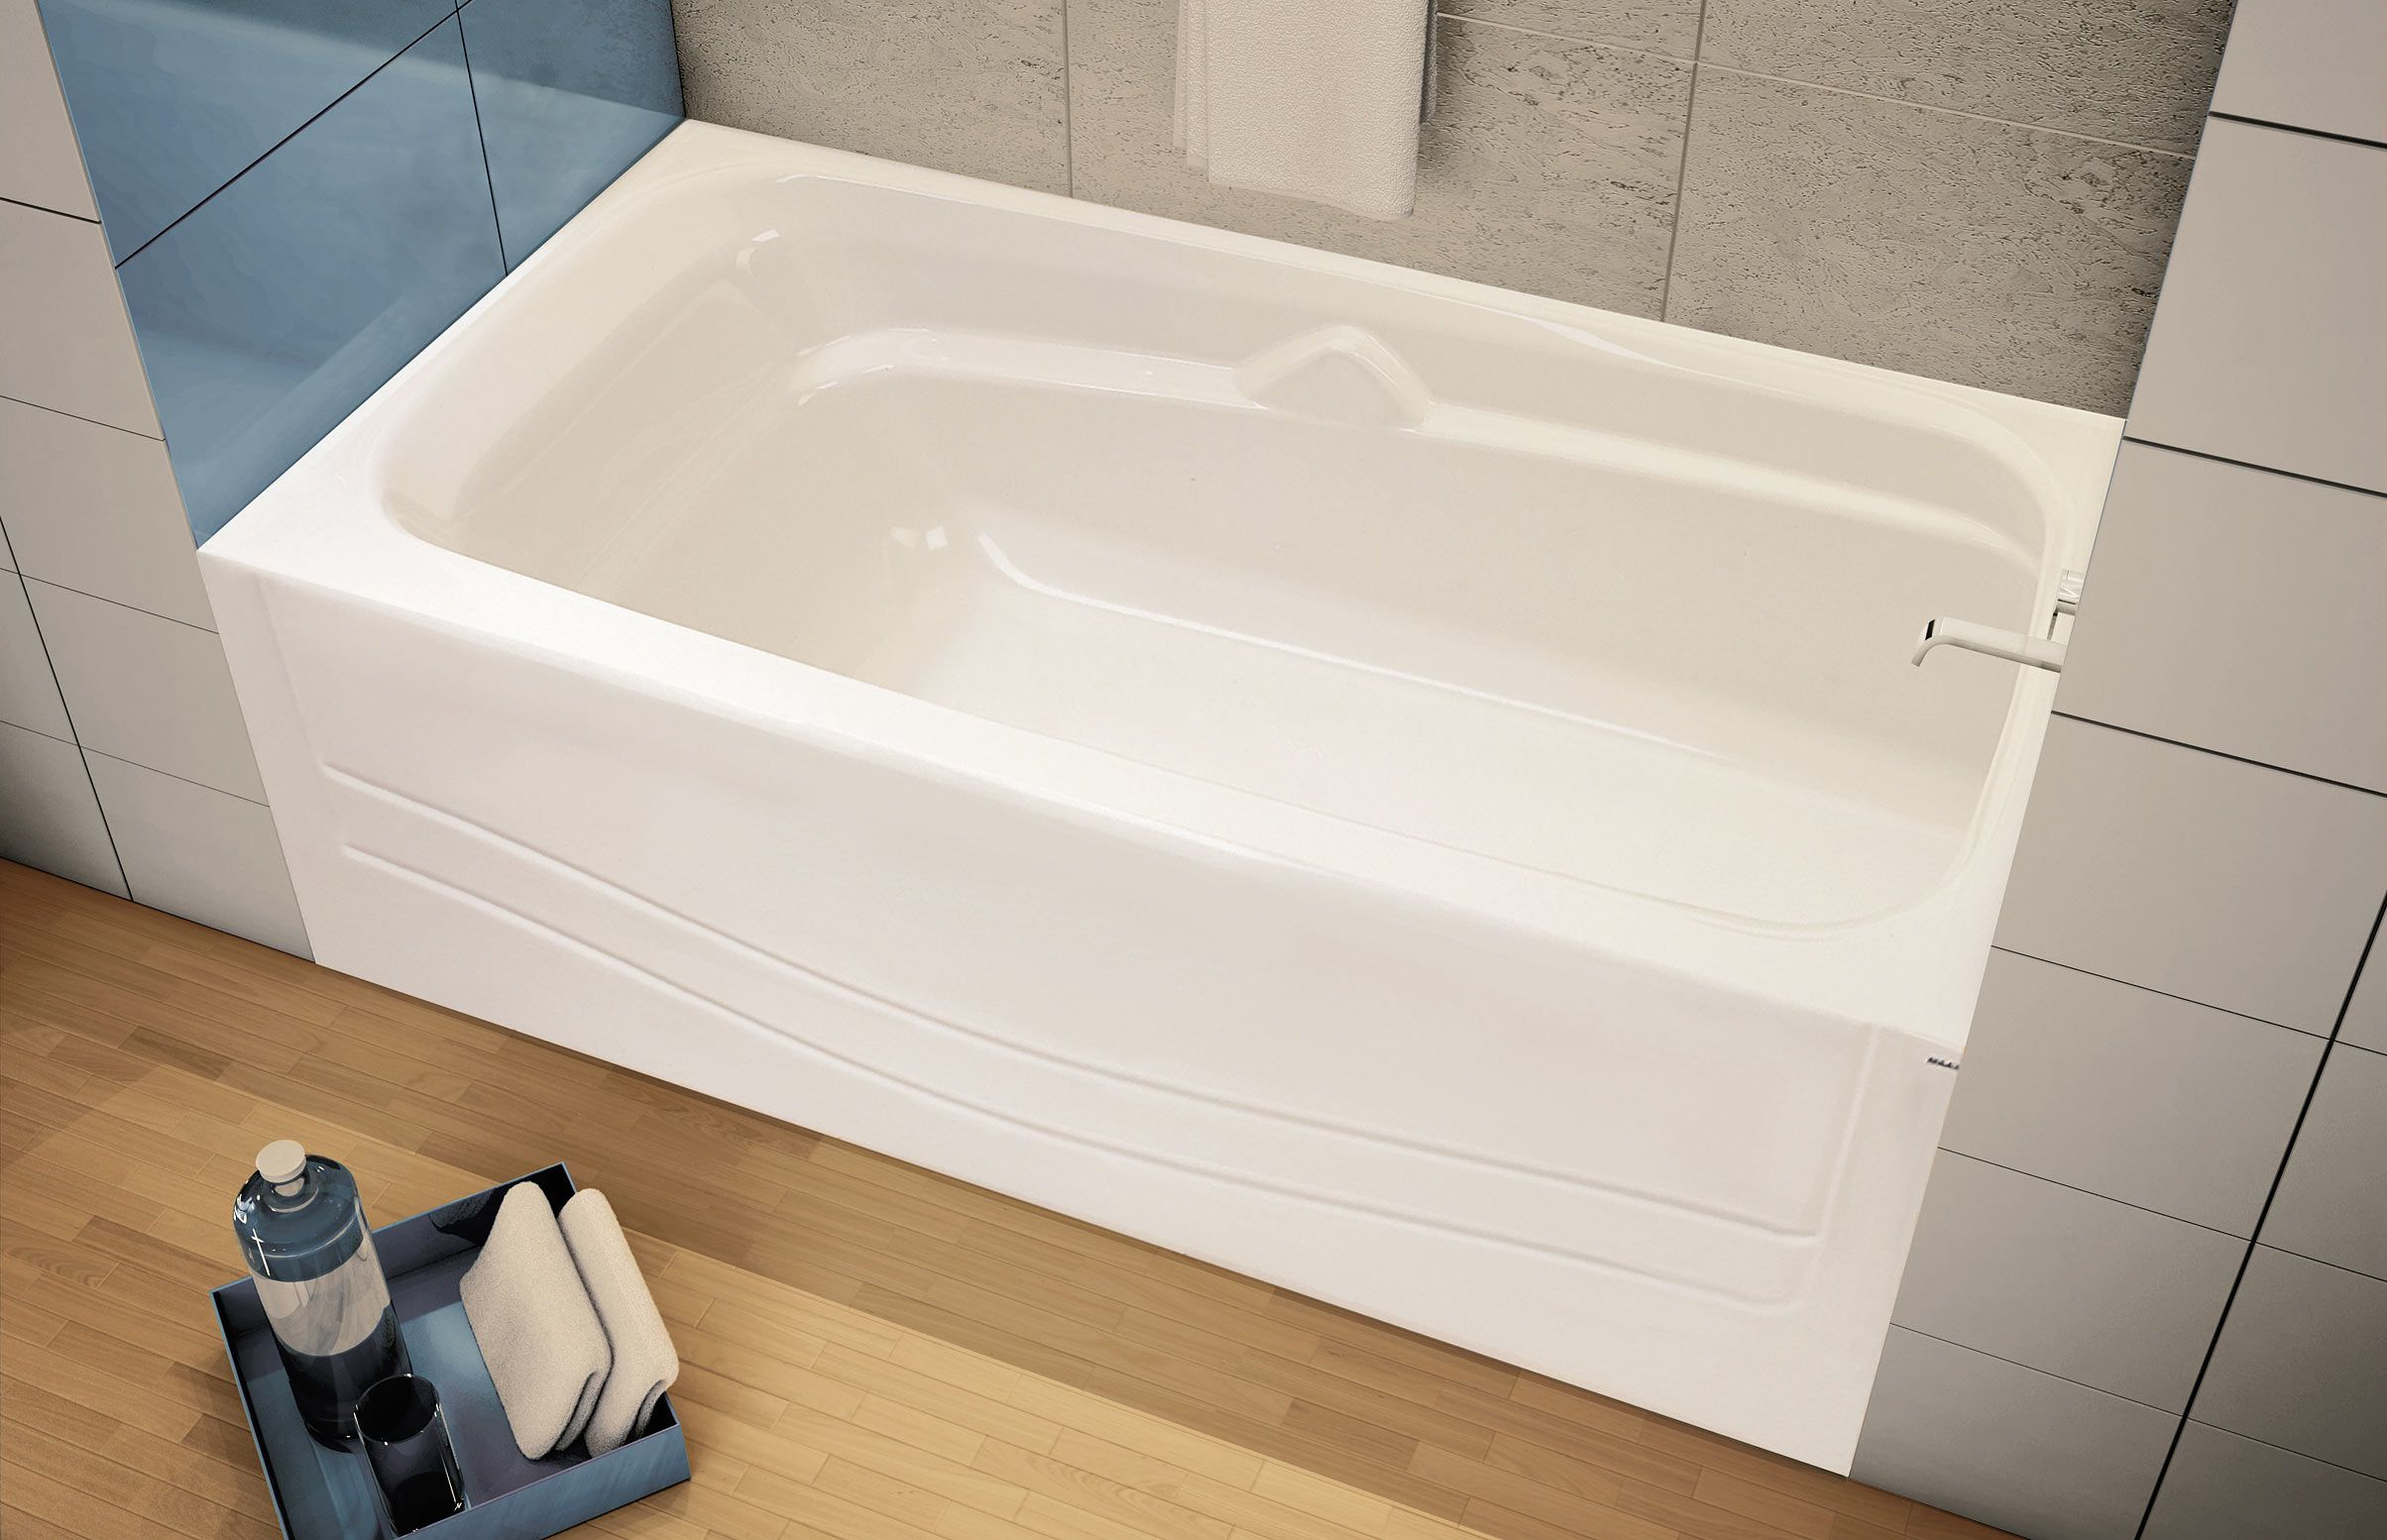 Avenue Alcove Bathtub Maax Professional 60x30x21 Tiny